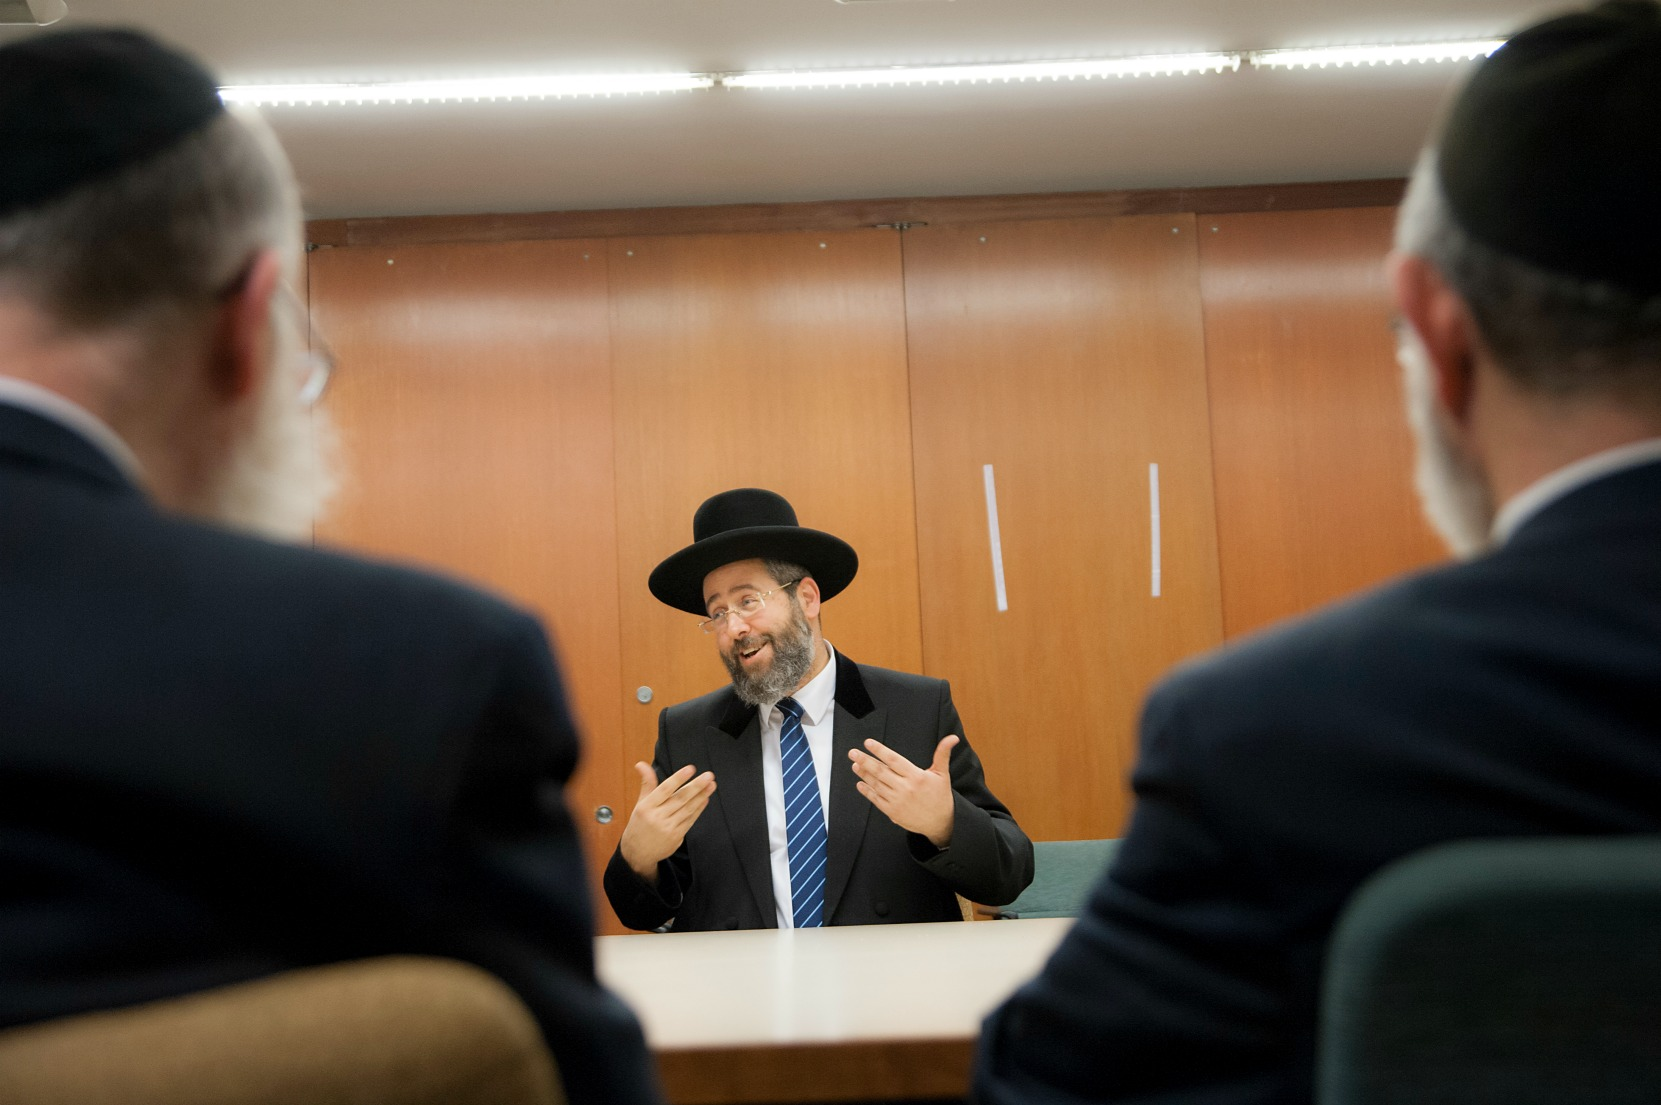 meet the rabbis review